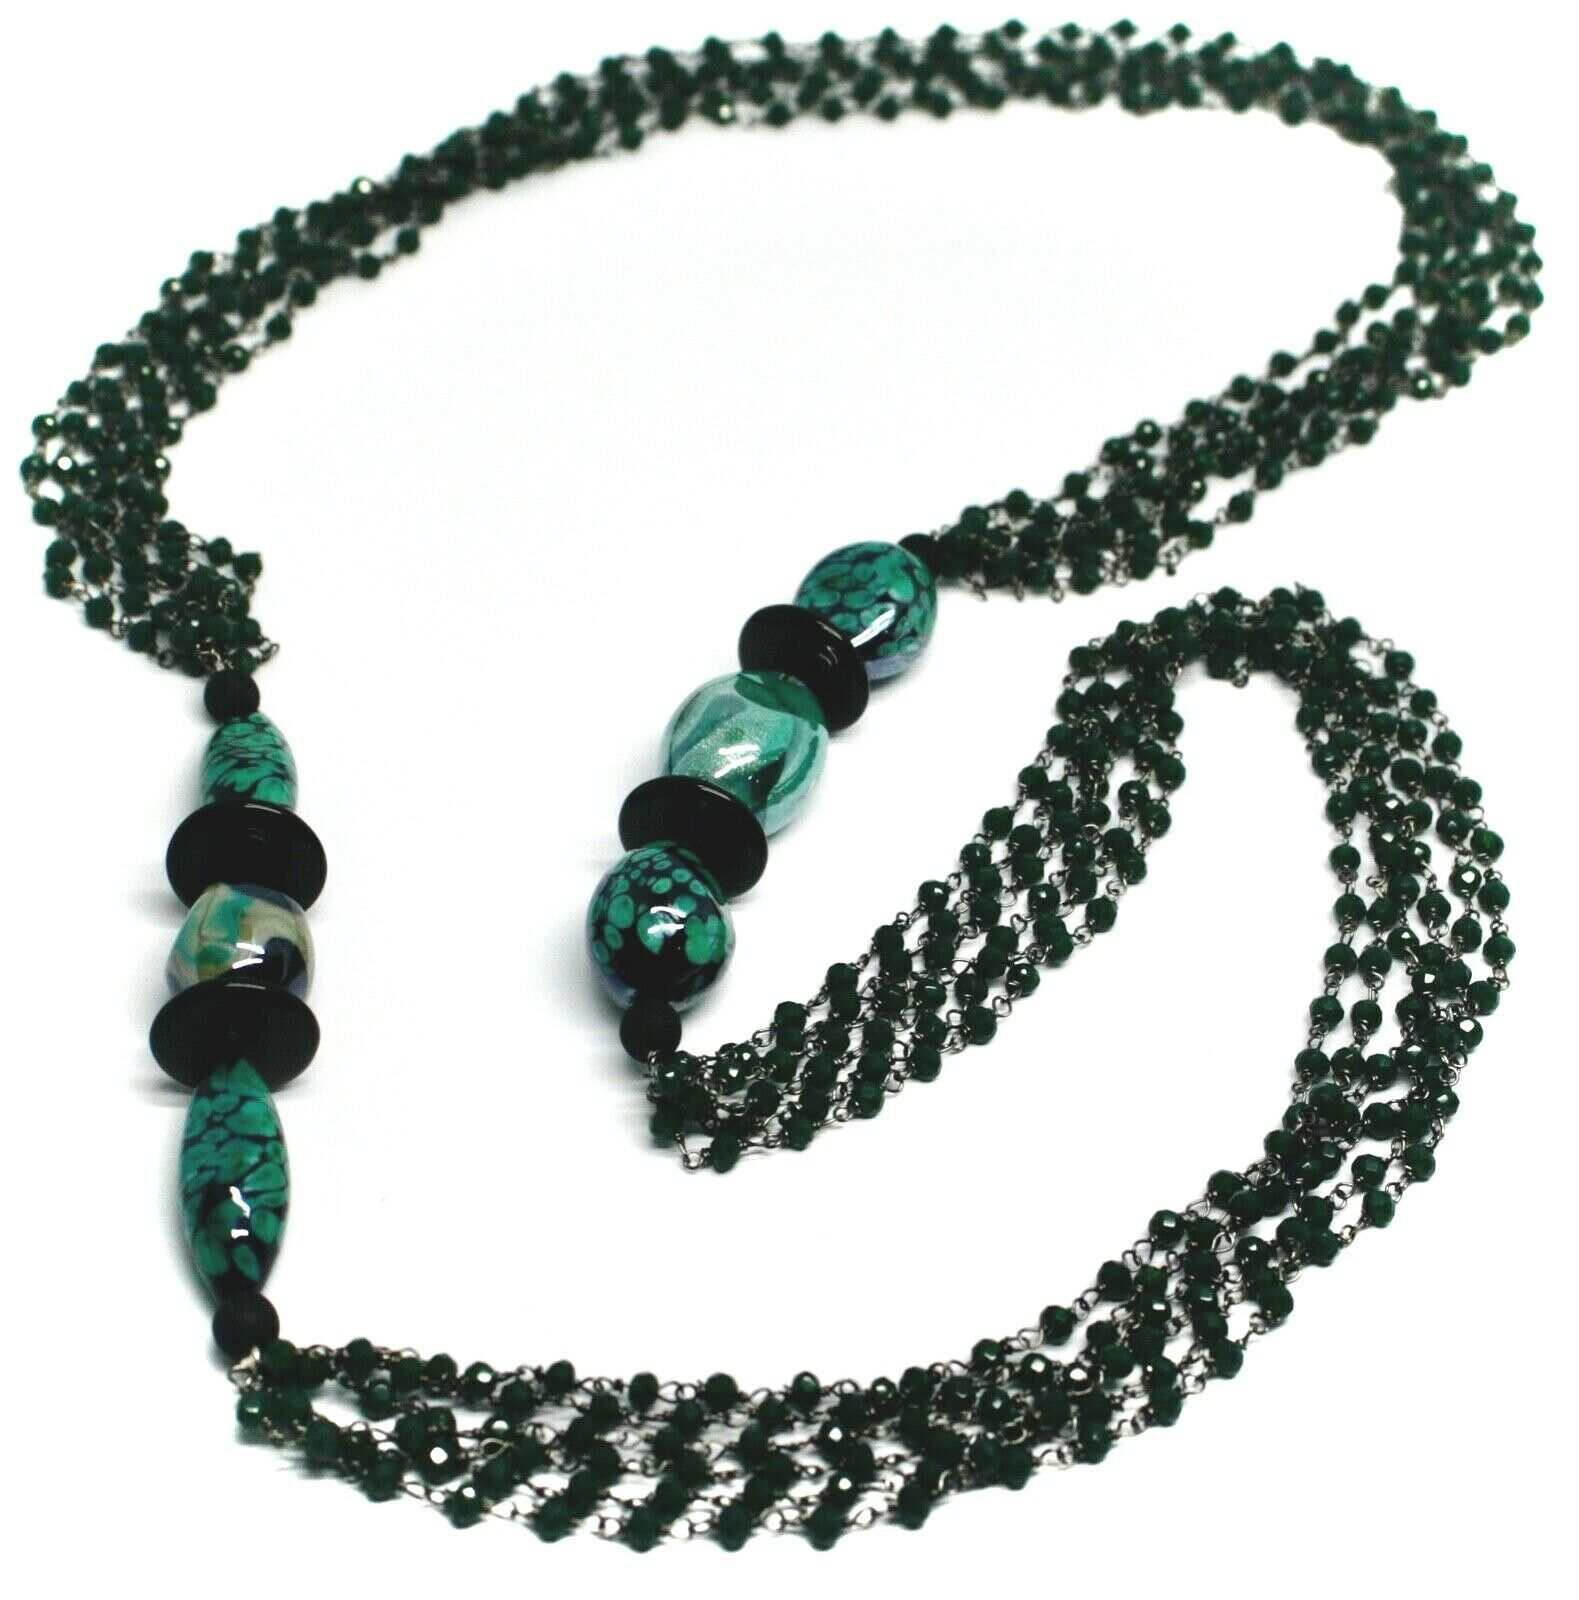 "NECKLACE BLACK, GREEN SPOTTED DROP OVAL MURANO GLASS, MULTI WIRES, 90cm 35"" LONG"